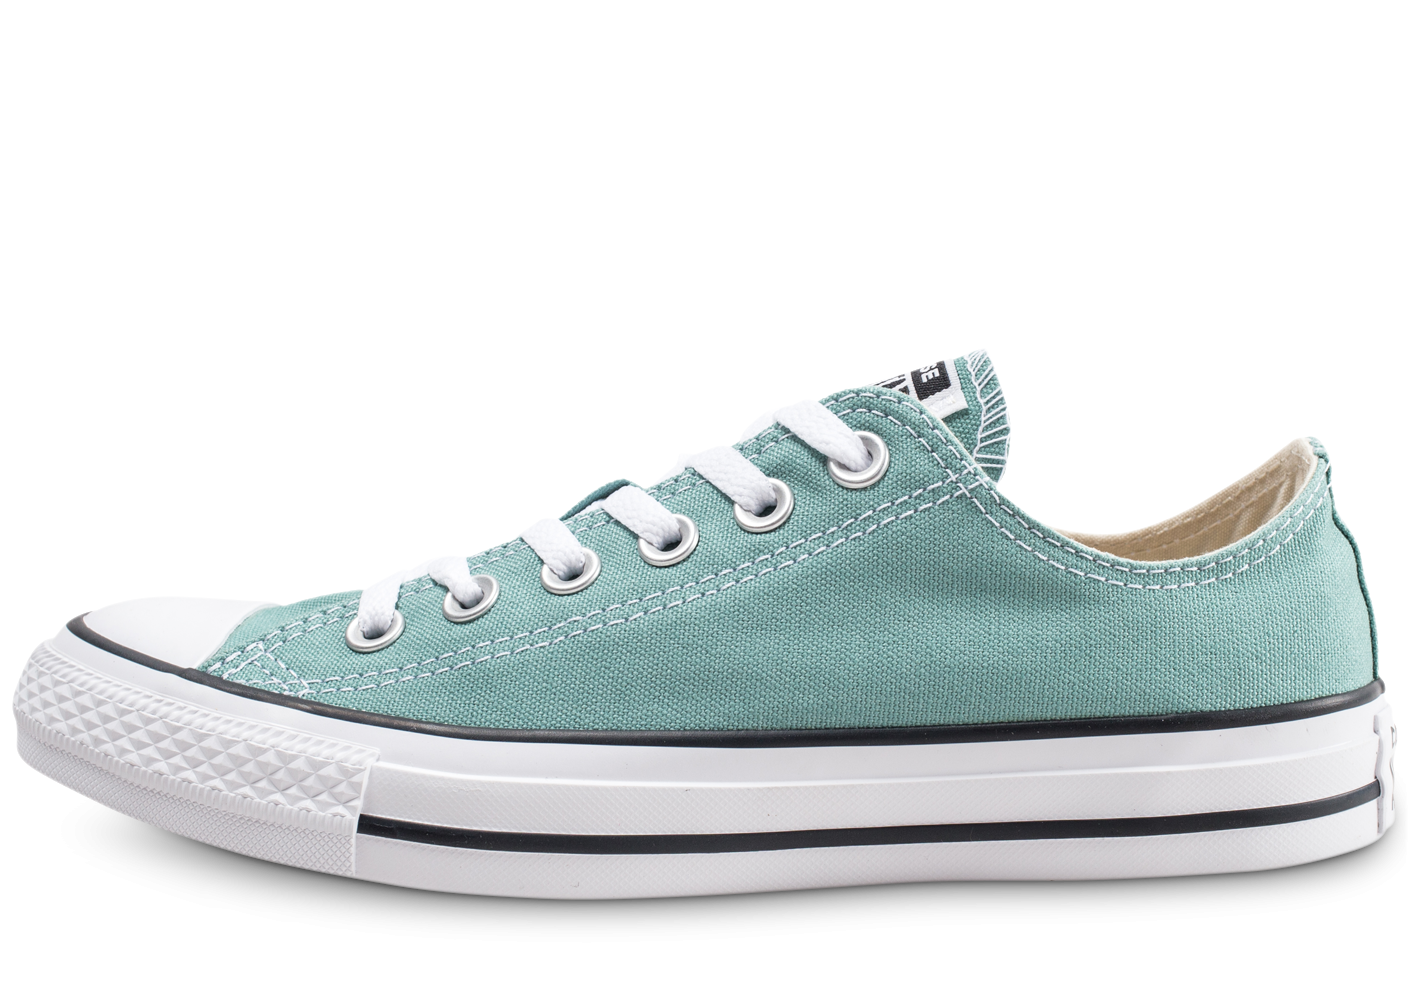 Converse Chuck Taylor All Star Low vert d'eau femme